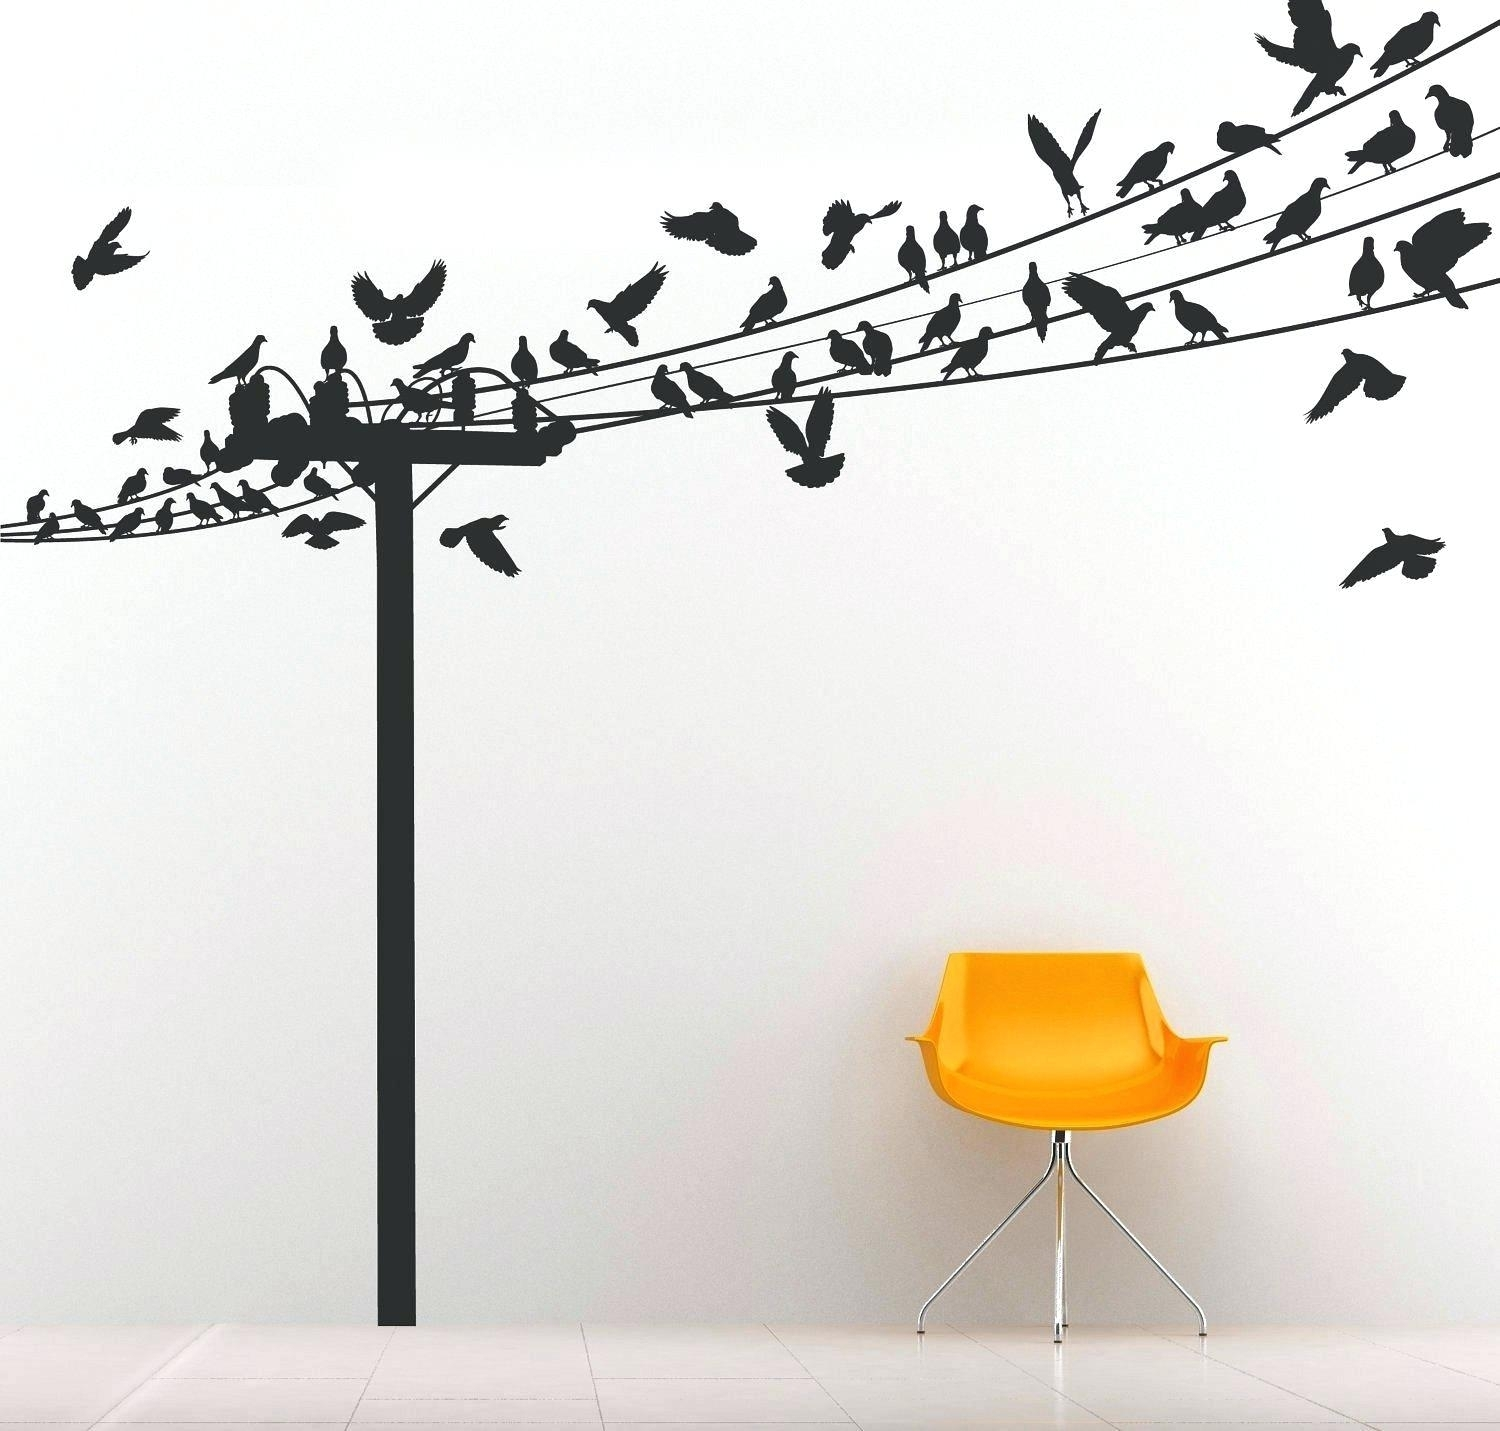 Bird Wall Decals For Nursery Wall Ideas Decorative Fabric Wall Art Within Current Fabric Bird Wall Art (View 6 of 15)